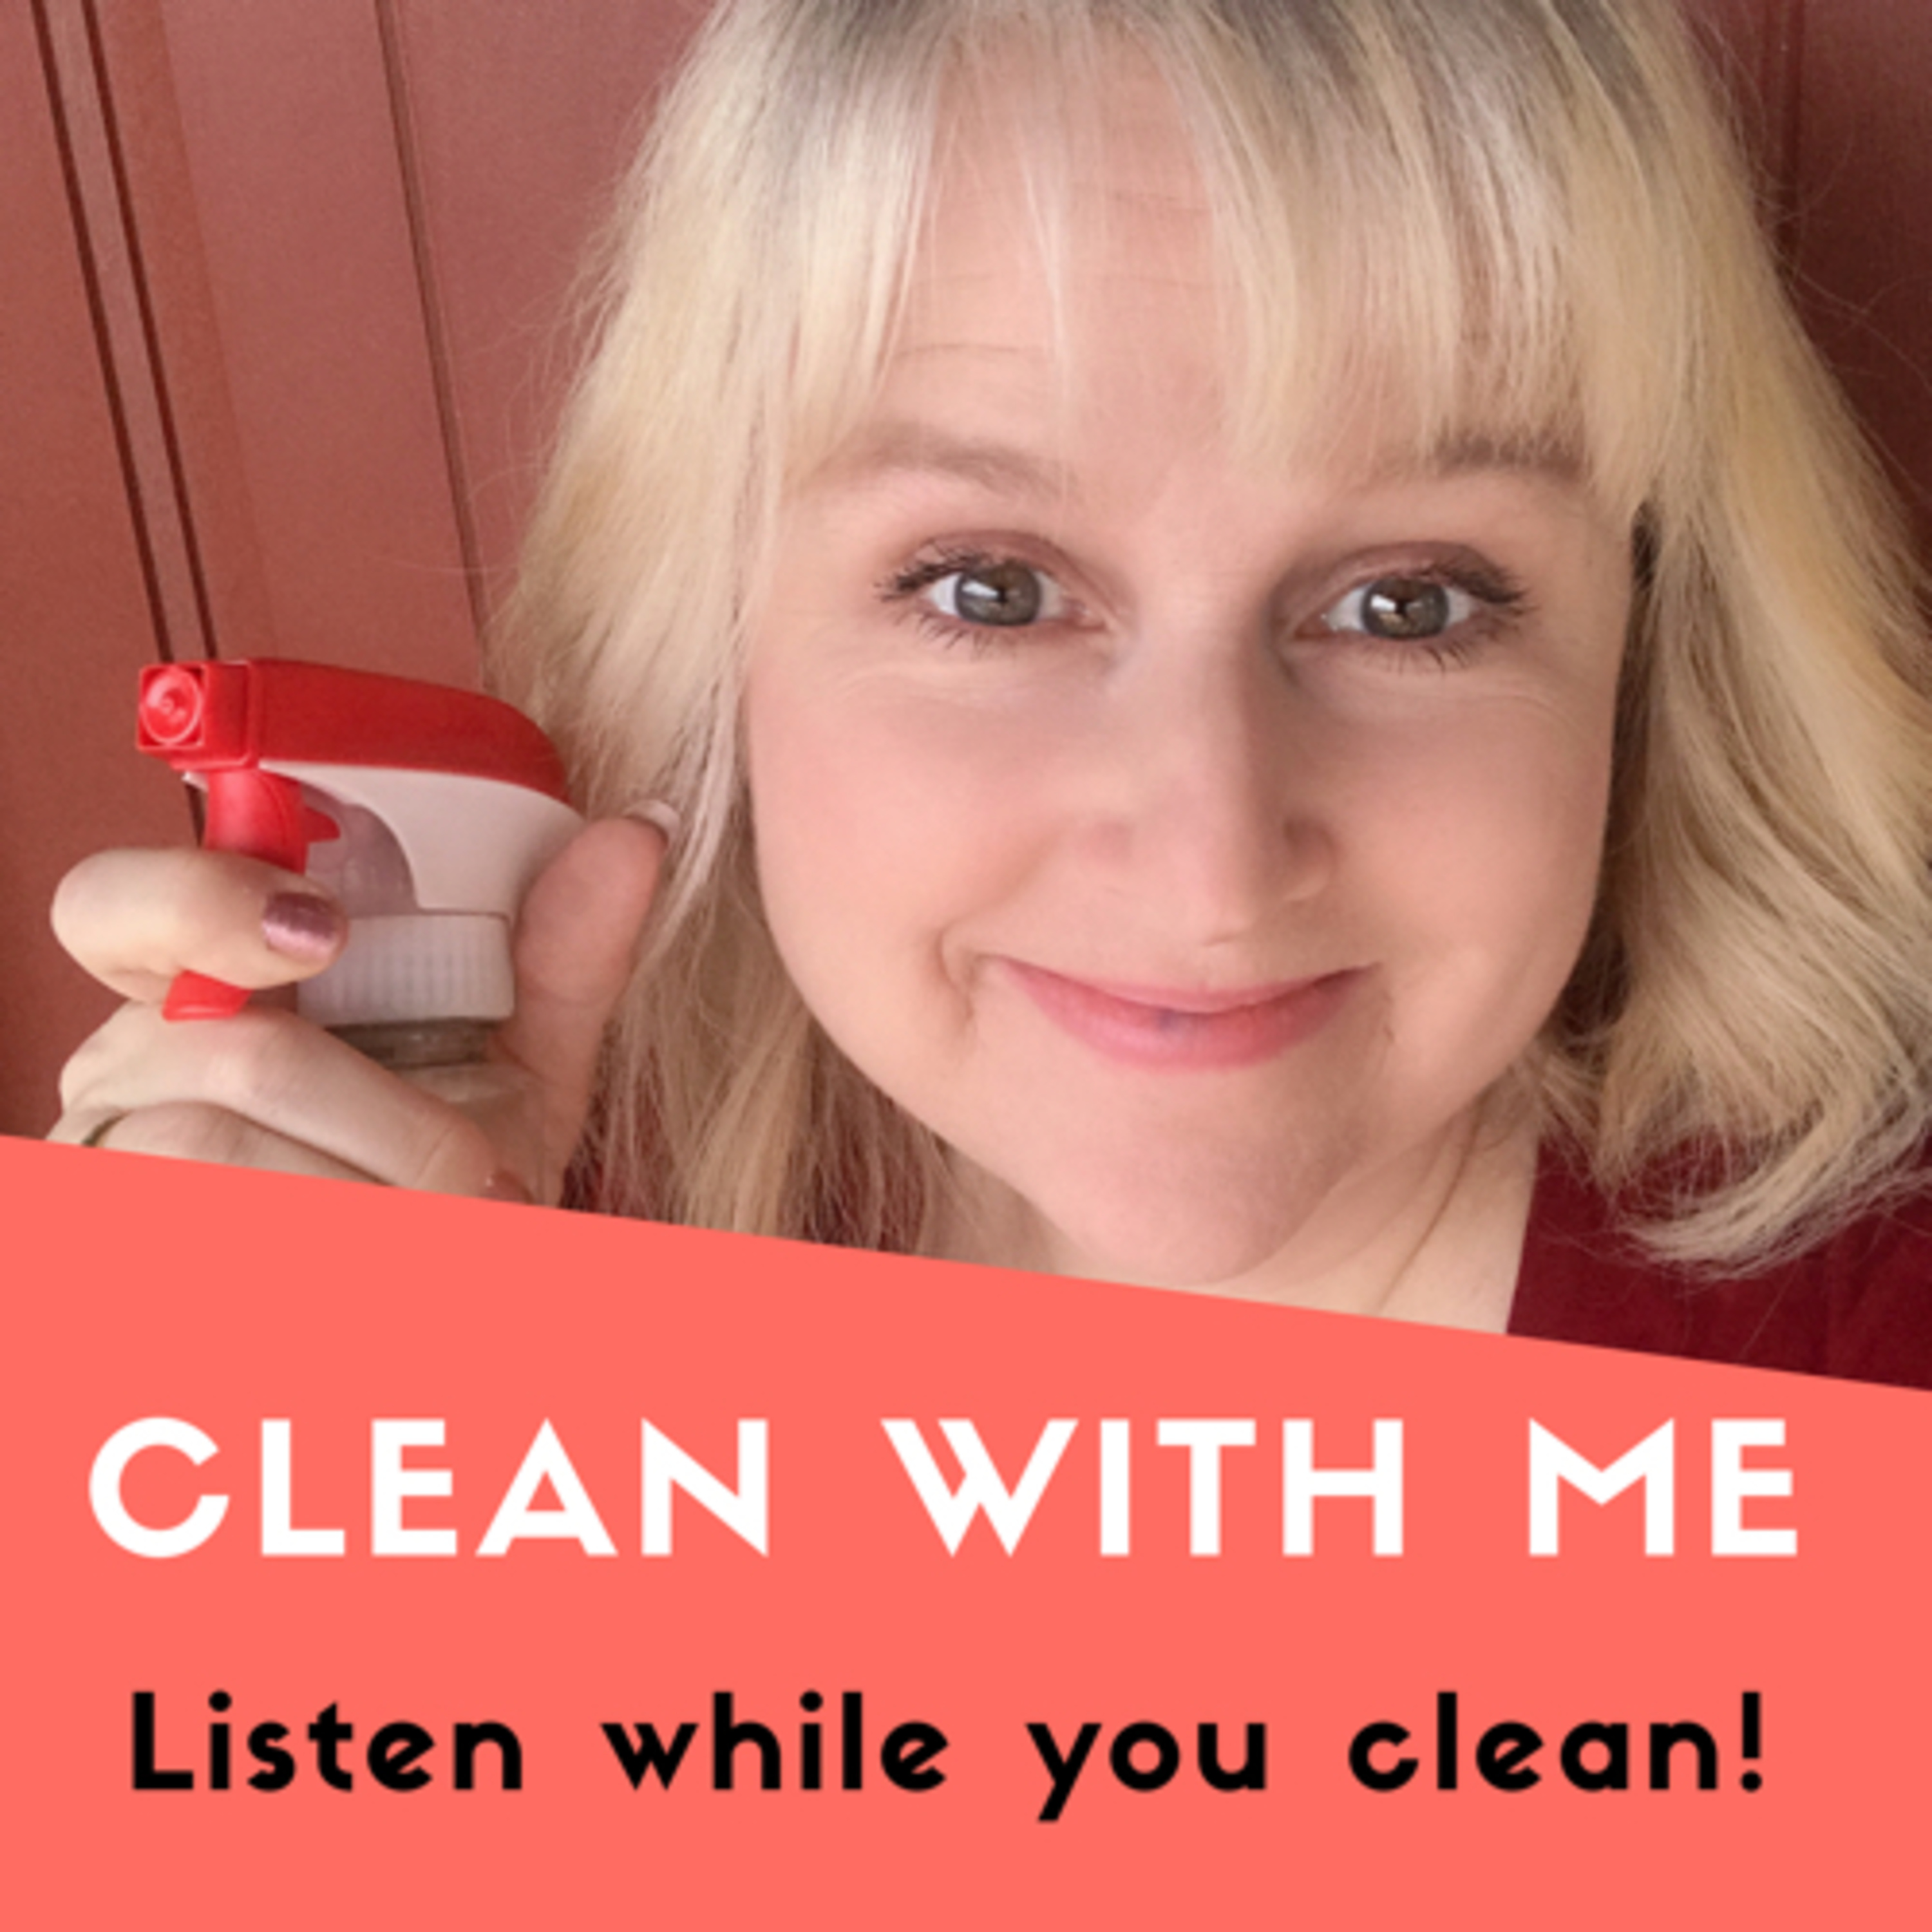 Clean With Me